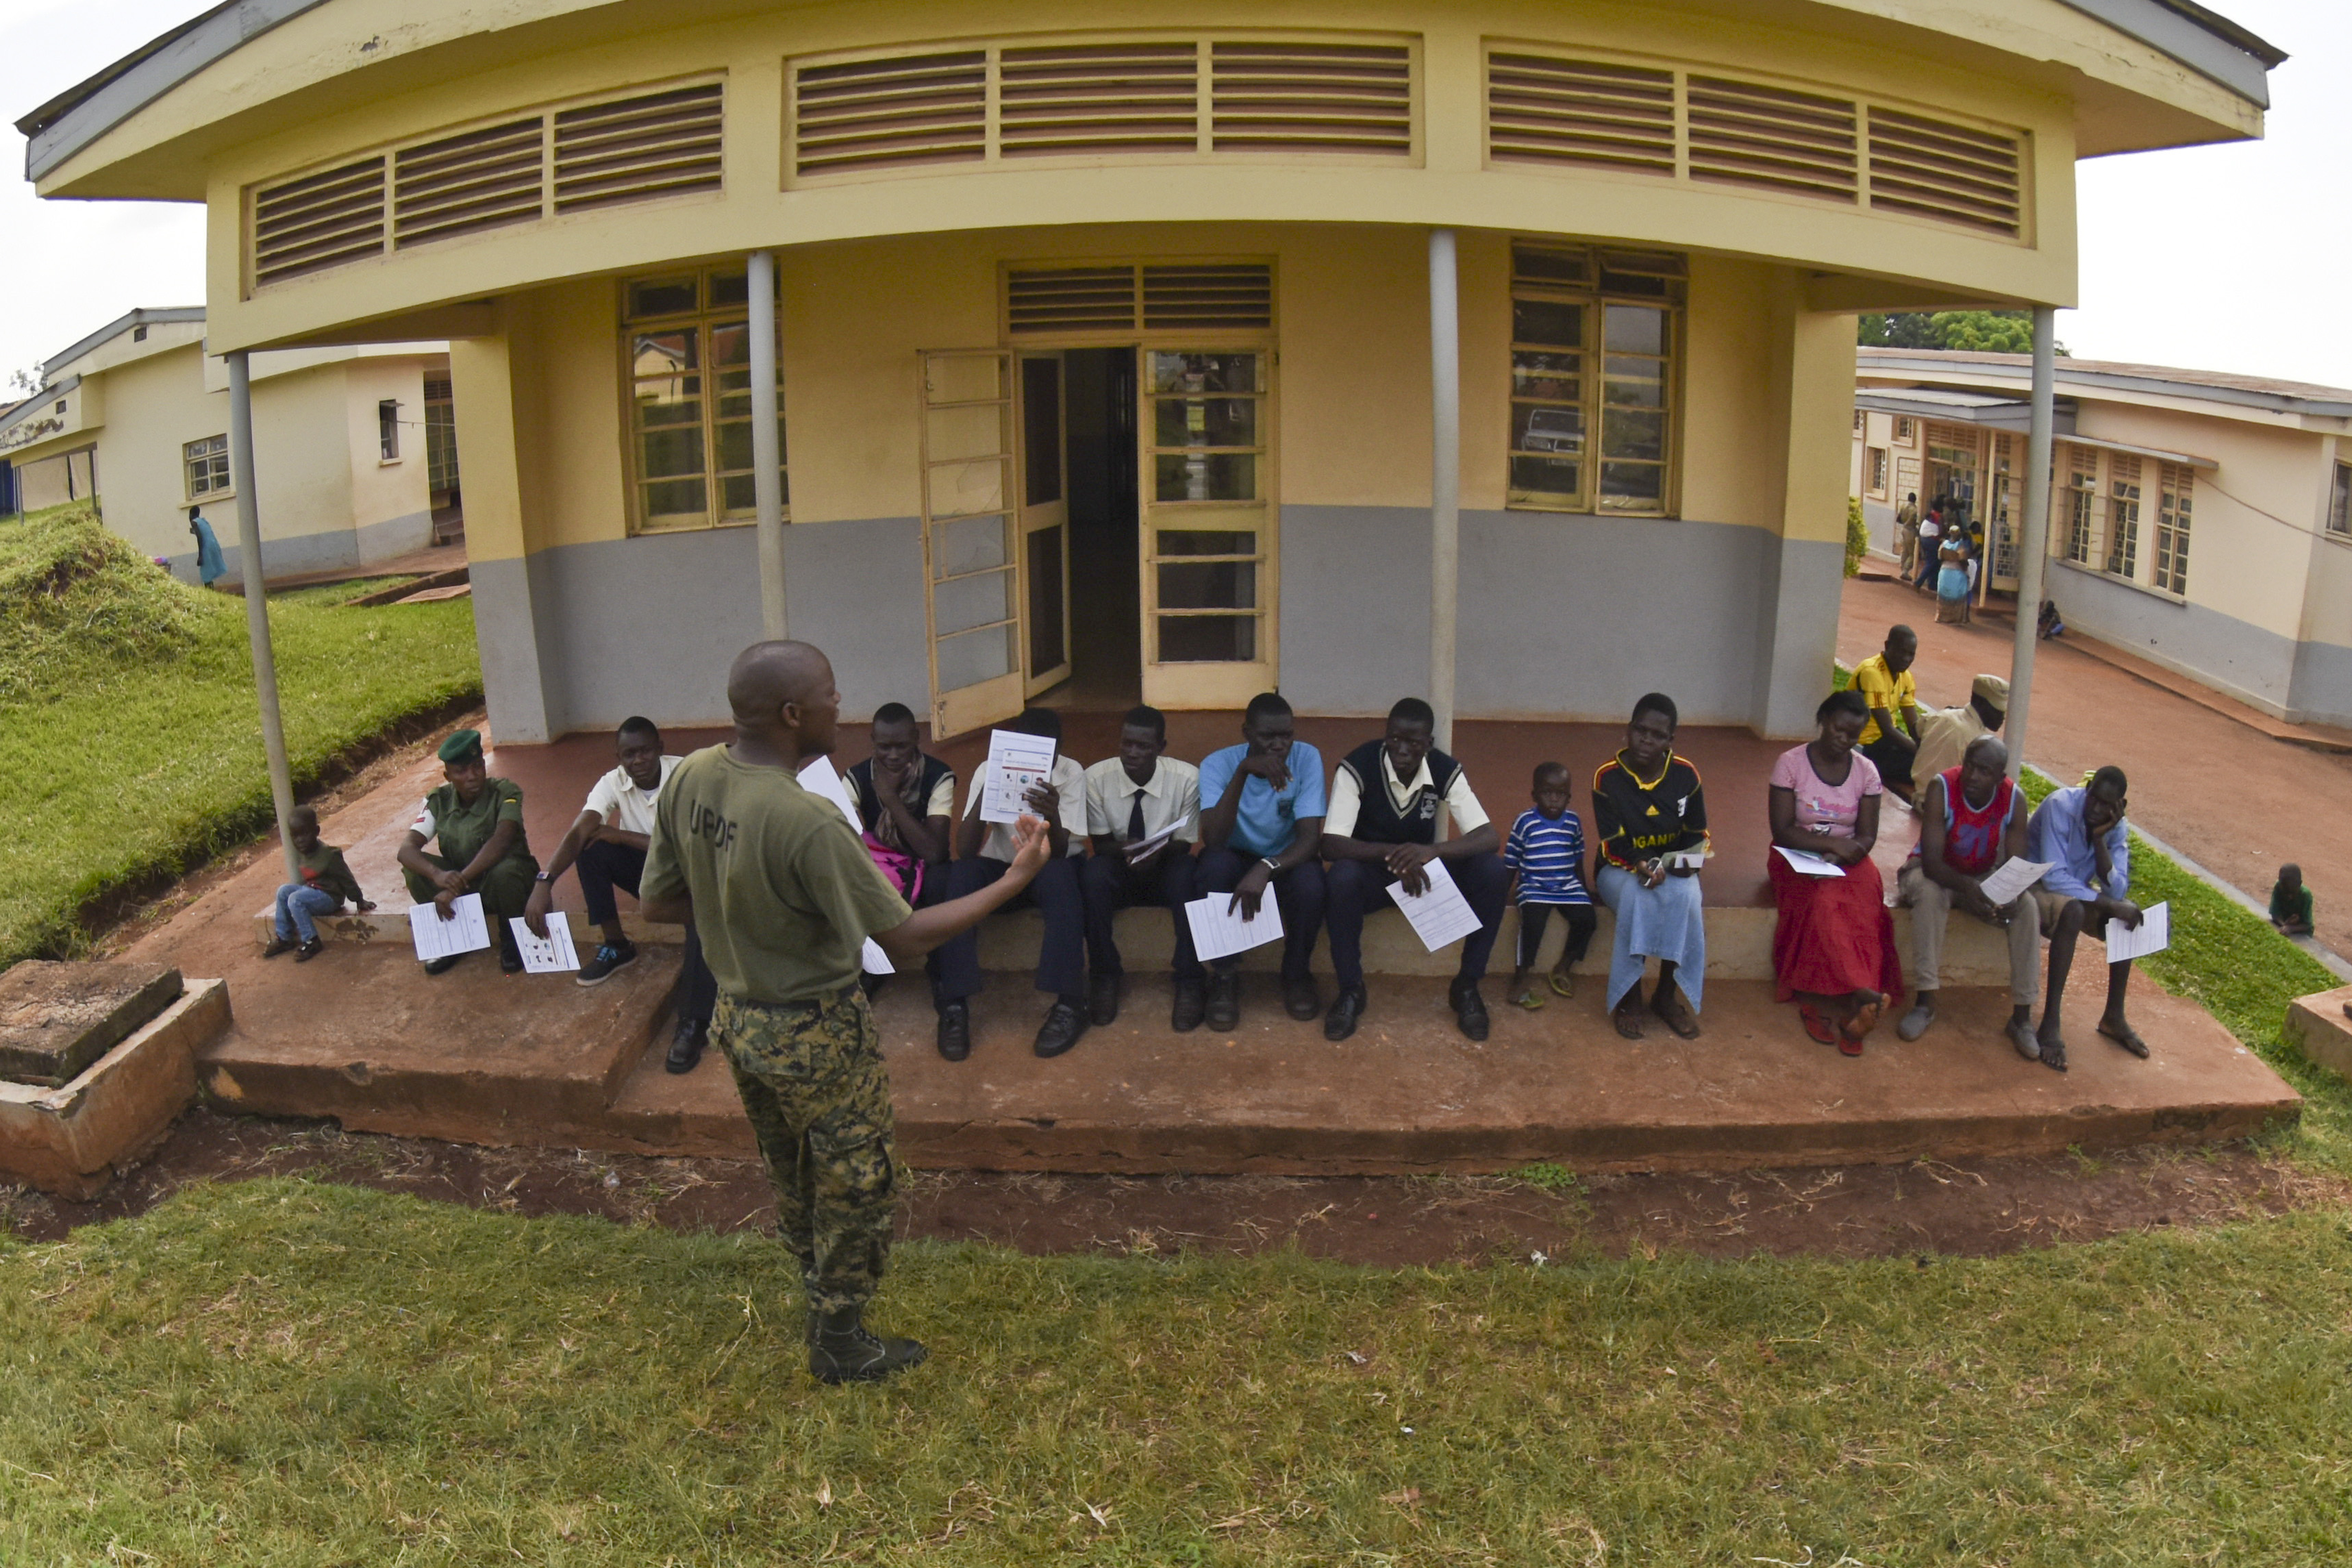 A UPDF soldier briefs students from a local school on medical procedures during MEDRETE 15-4 on September 21, 2015 in Jinja, Uganda.  This exercise focused on exchange of best practices strengthening U.S. strategic partnerships with UPDF to enhance readiness and interoperability. (U.S. Air Force photo by Master Sgt. Charlene M. Spade)